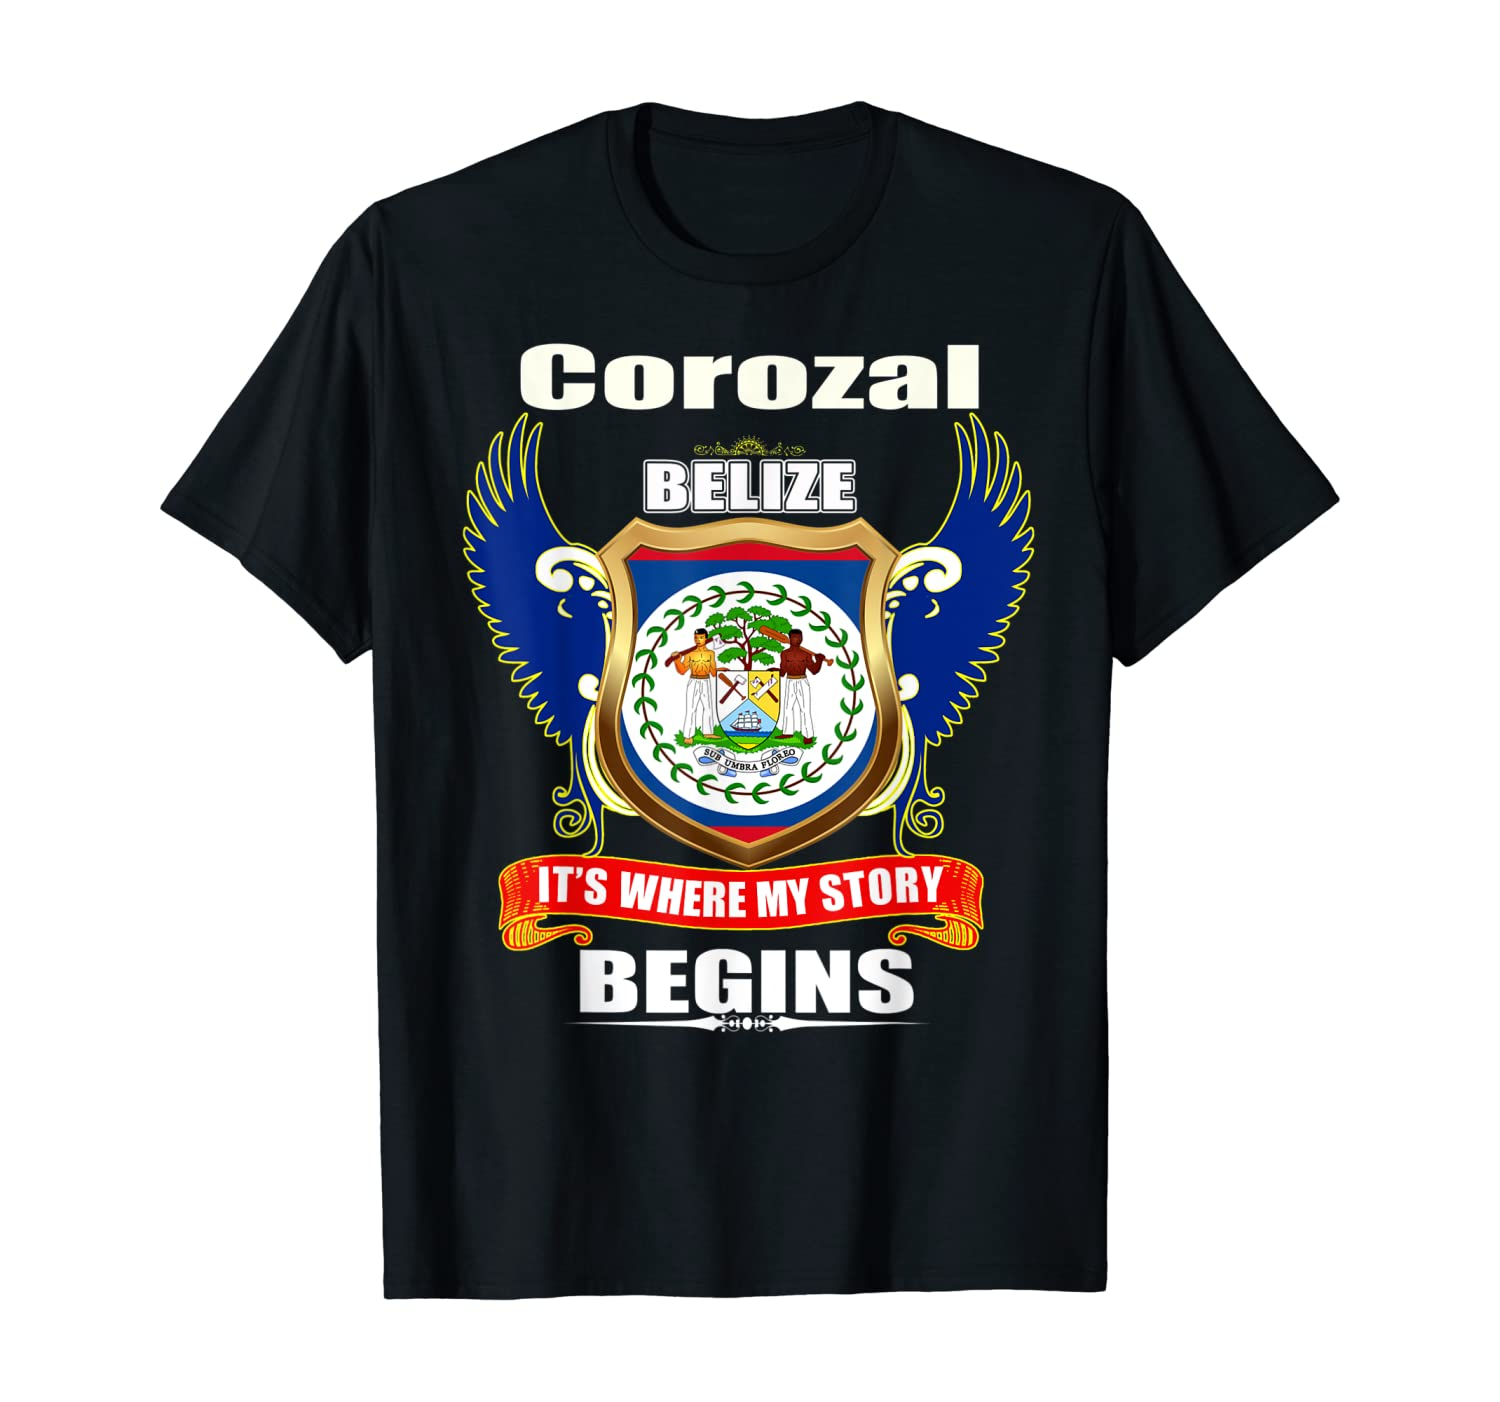 just looking for someone real in corozal